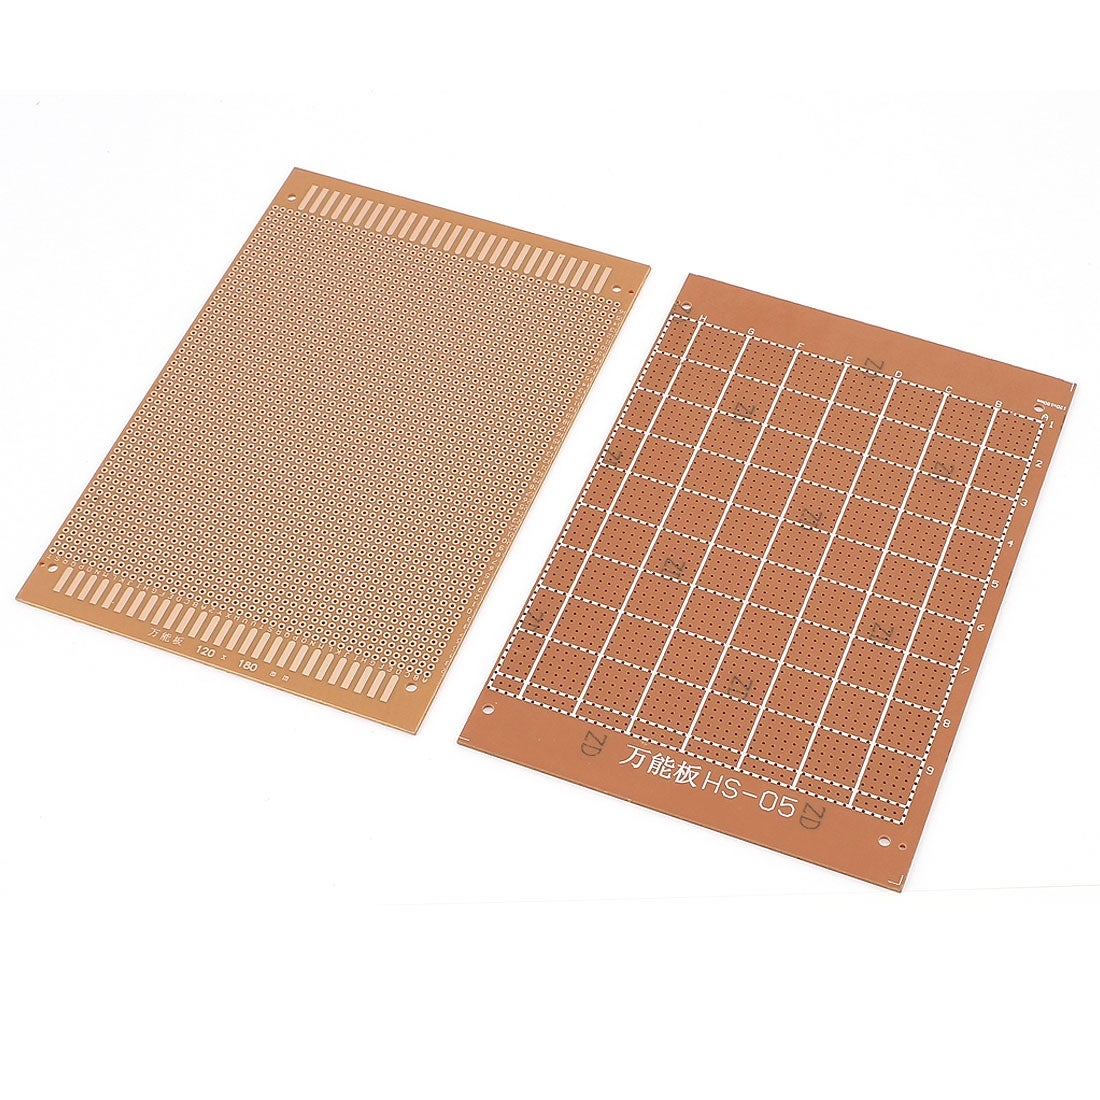 Unique Bargains 2pcs Pcb Printed Circuit Board Prototype Breadboard Bread Stripboard 18cm X 12cm Free Shipping On Orders Over 45 24472519